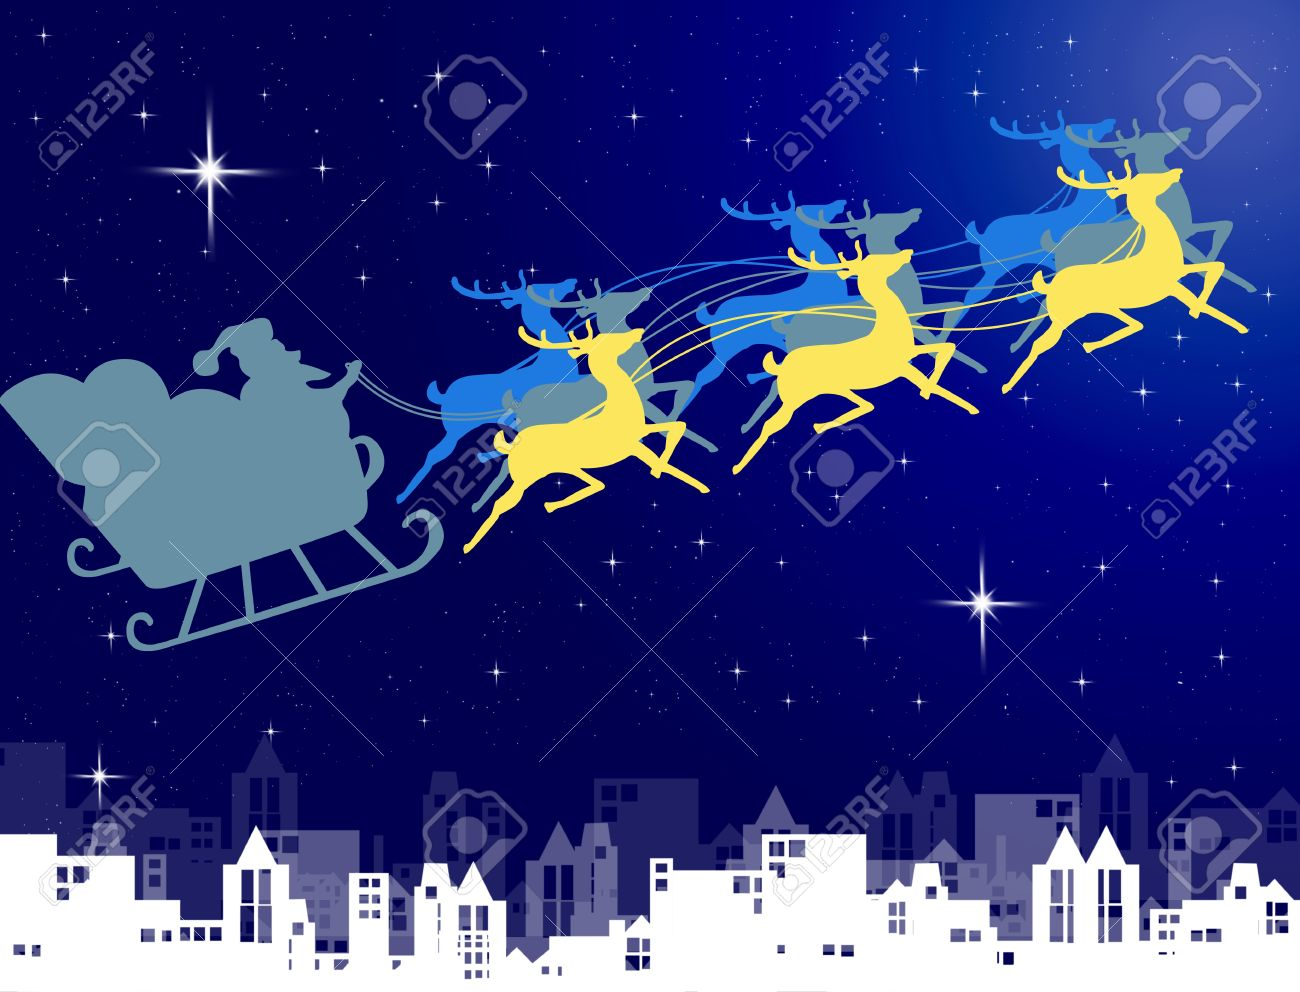 Santa Claus in his sleigh with night sky over the city background, Christmas concept Stock Photo - 11036963